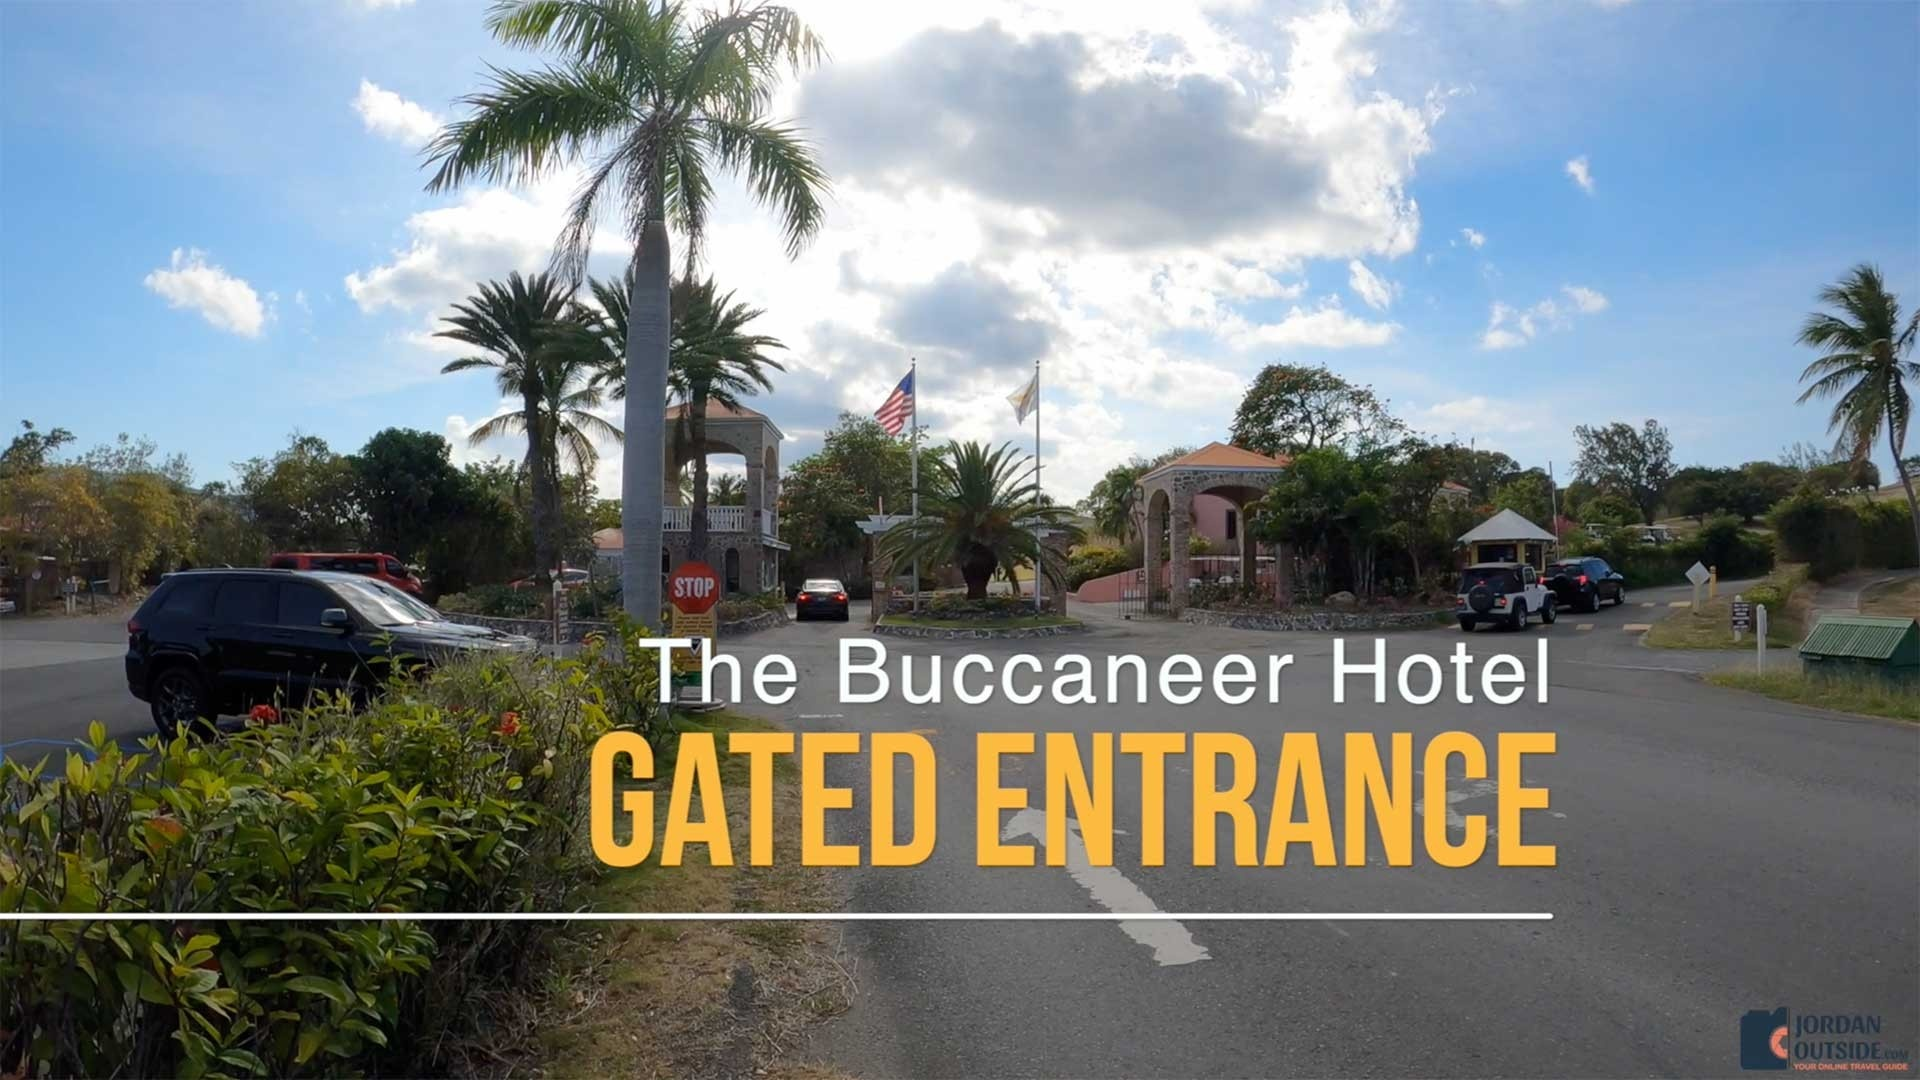 The Buccaneer Hotel Gated Entrance